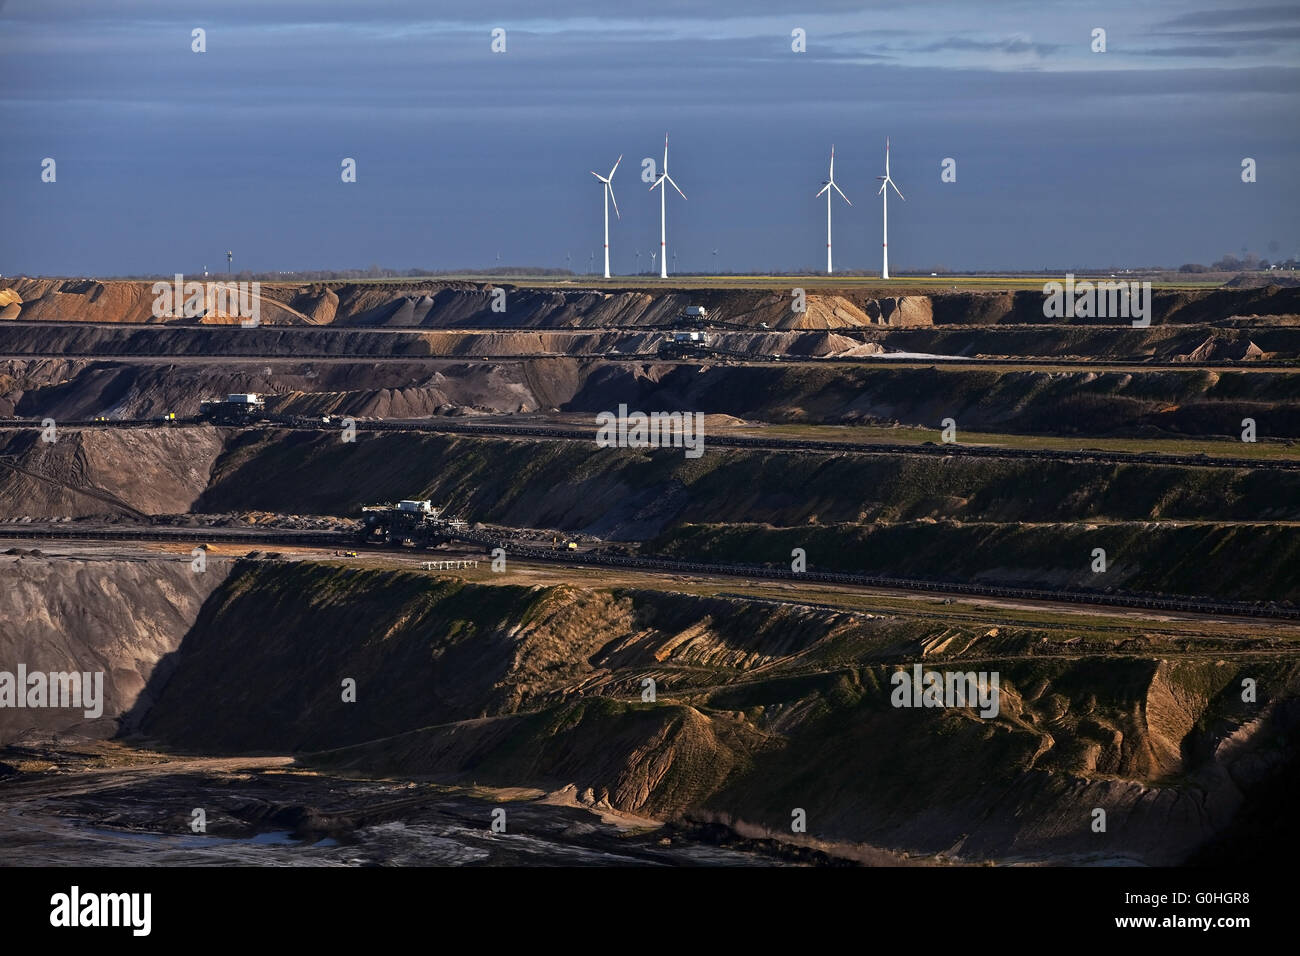 Garzweiler II brown coal surface mining and wind wheels, Garzweiler, North Rhine-Westphalia, Germany - Stock Image